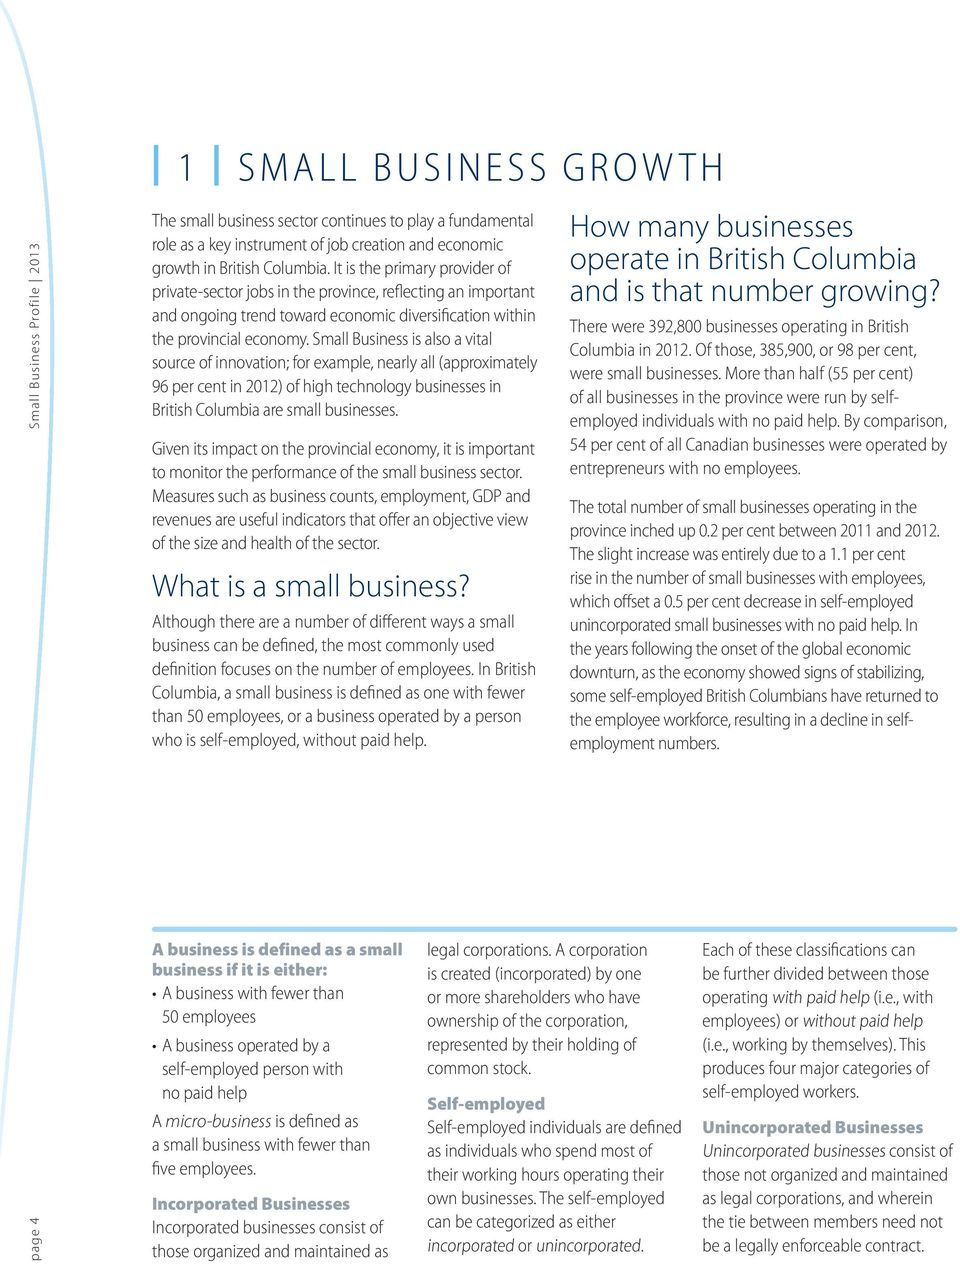 Small Business is also a vital source of innovation; for example, nearly all (approximately 96 per cent in 2012) of high technology businesses in British Columbia are small businesses.